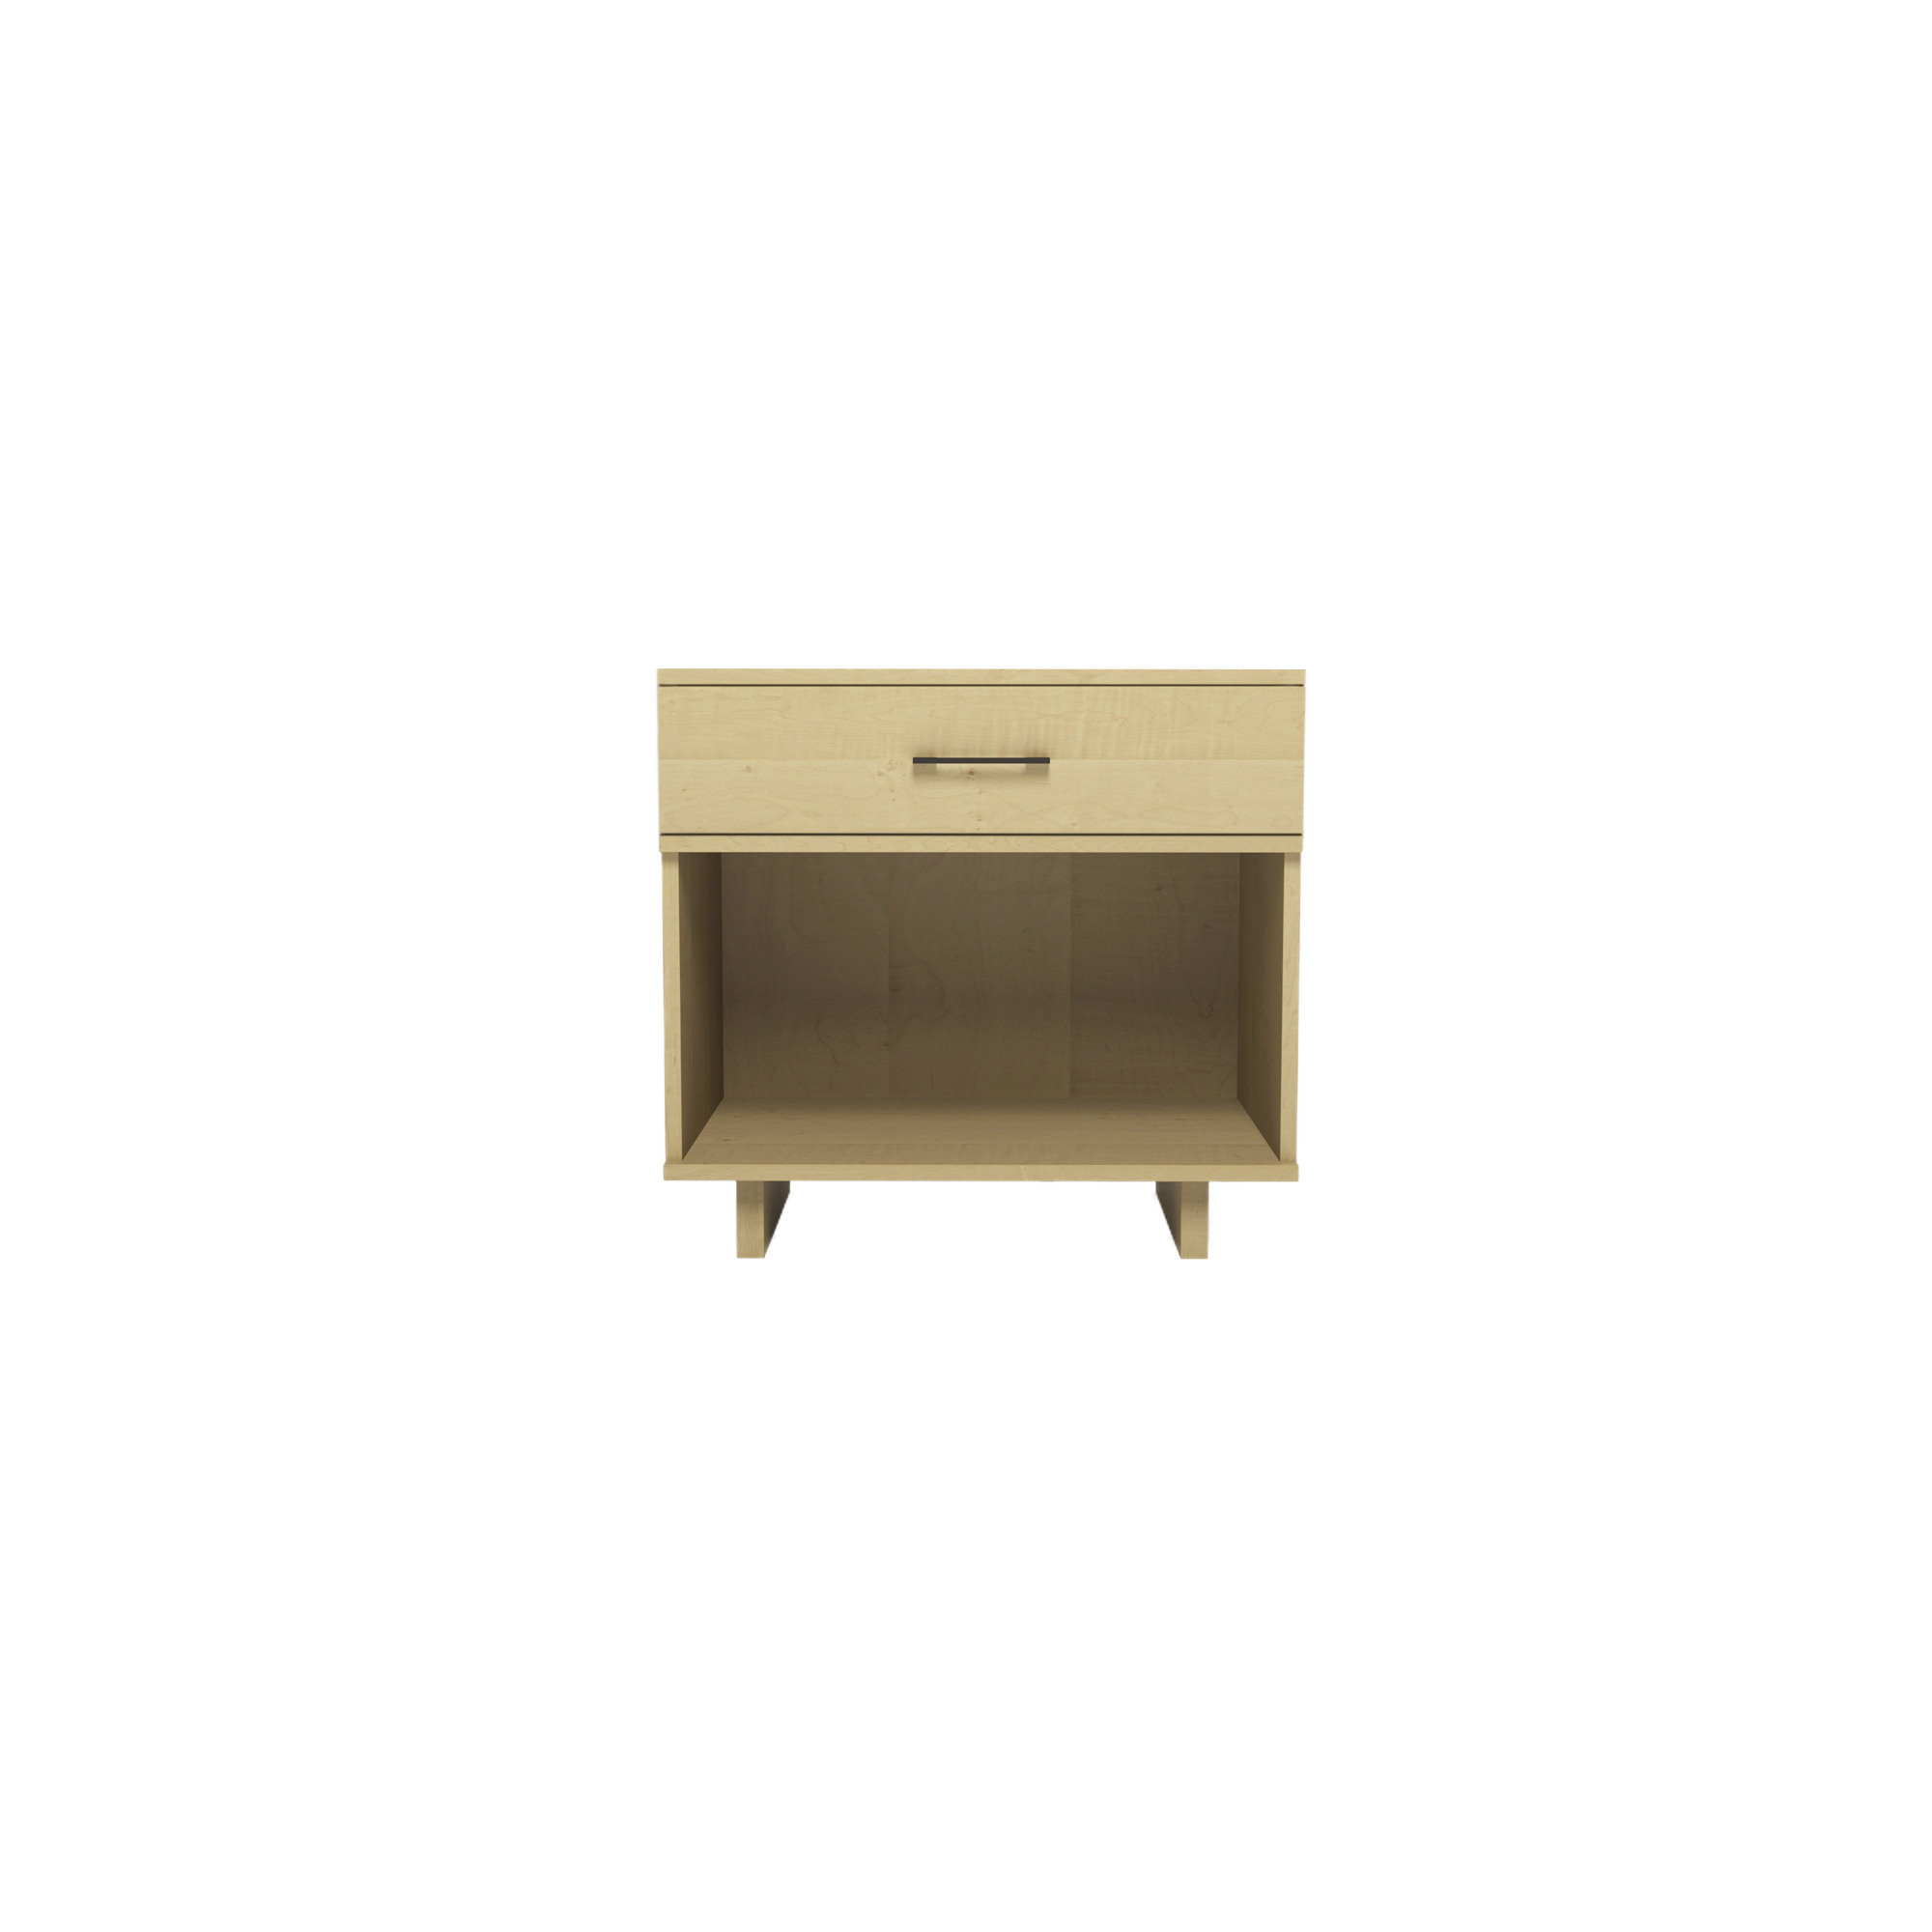 Series 252 Bedside Table